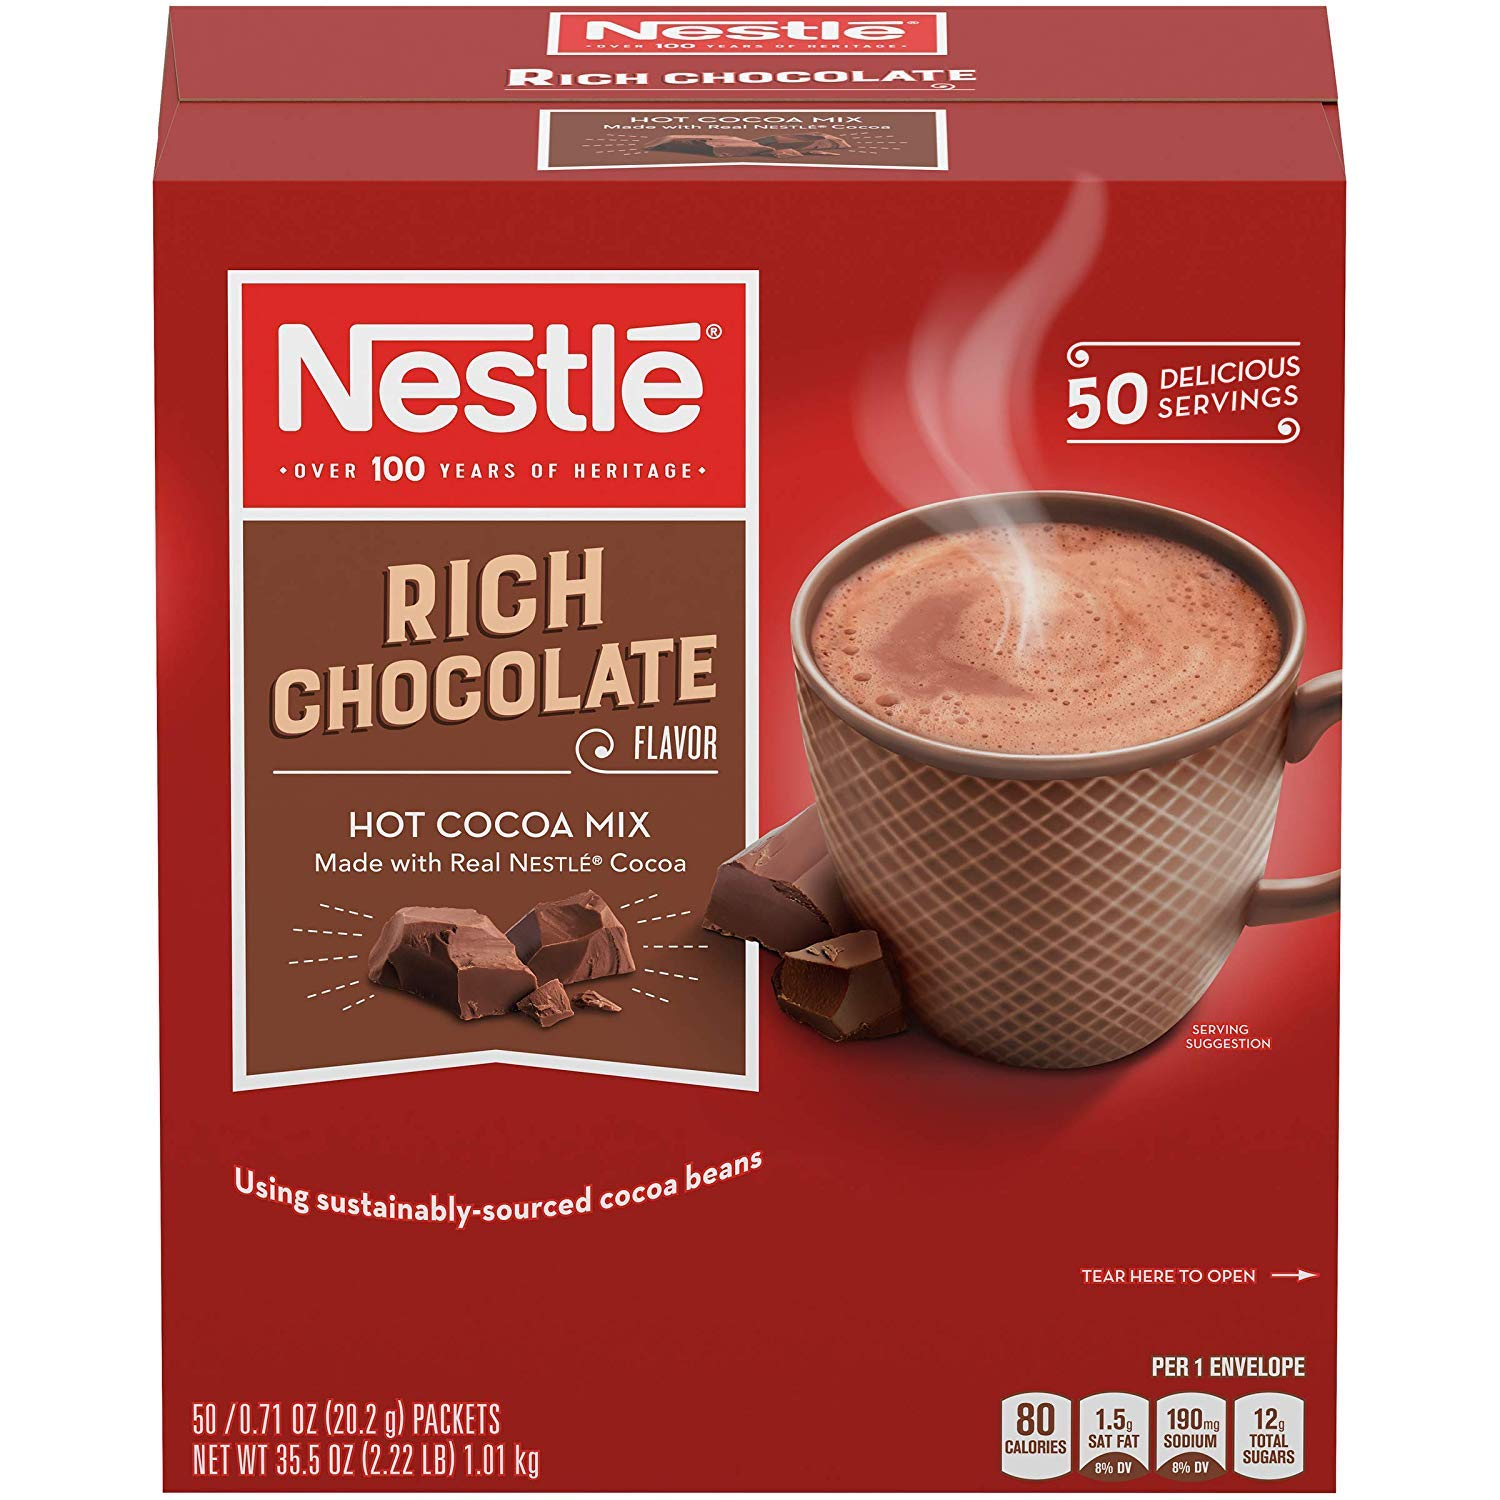 Nestle Hot Chocolate Mix, Hot Cocoa, Rich Chocolate Flavor, Made with Real Cocoa, 0.71 oz Packets (Pack of 50) (2 Pack(50 Count))